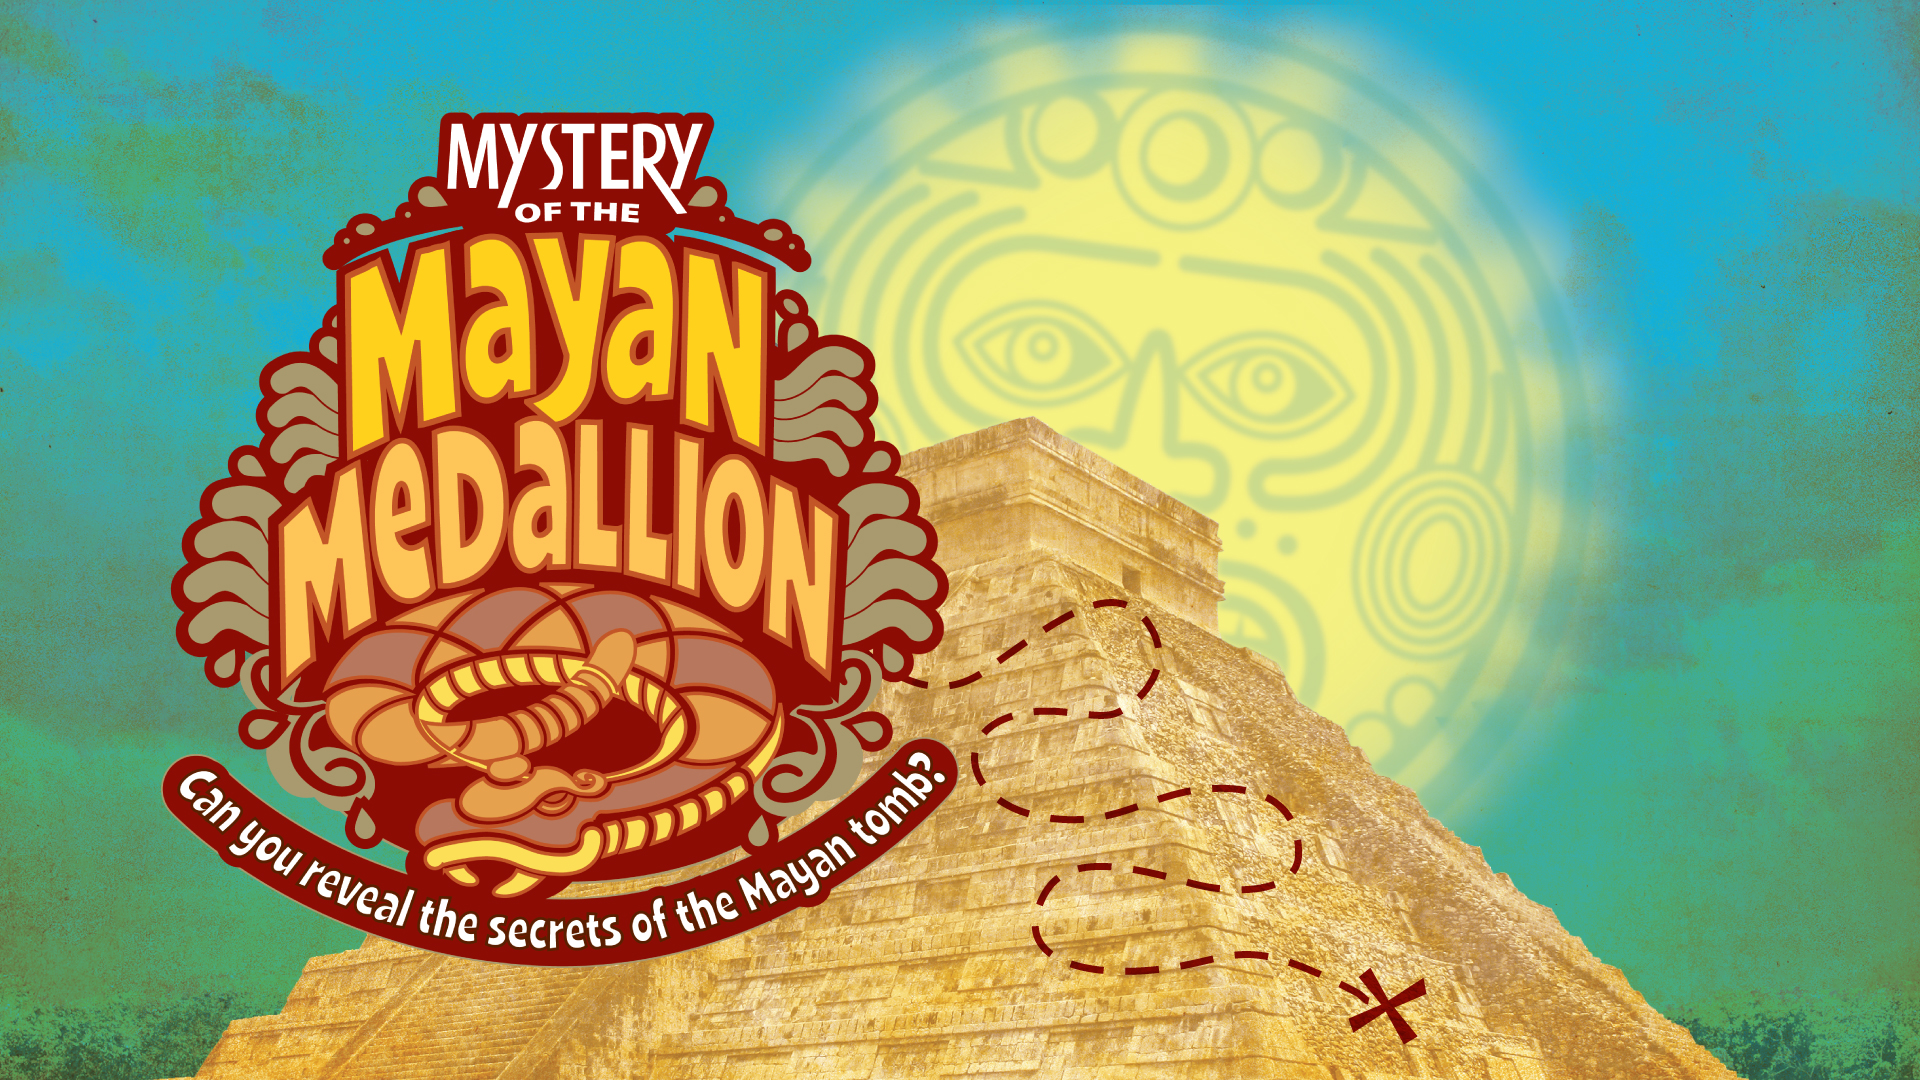 Mystery of the Mayan Medallion - Sept 28 - Jan 12, 2020VIEW EXHIBITION >